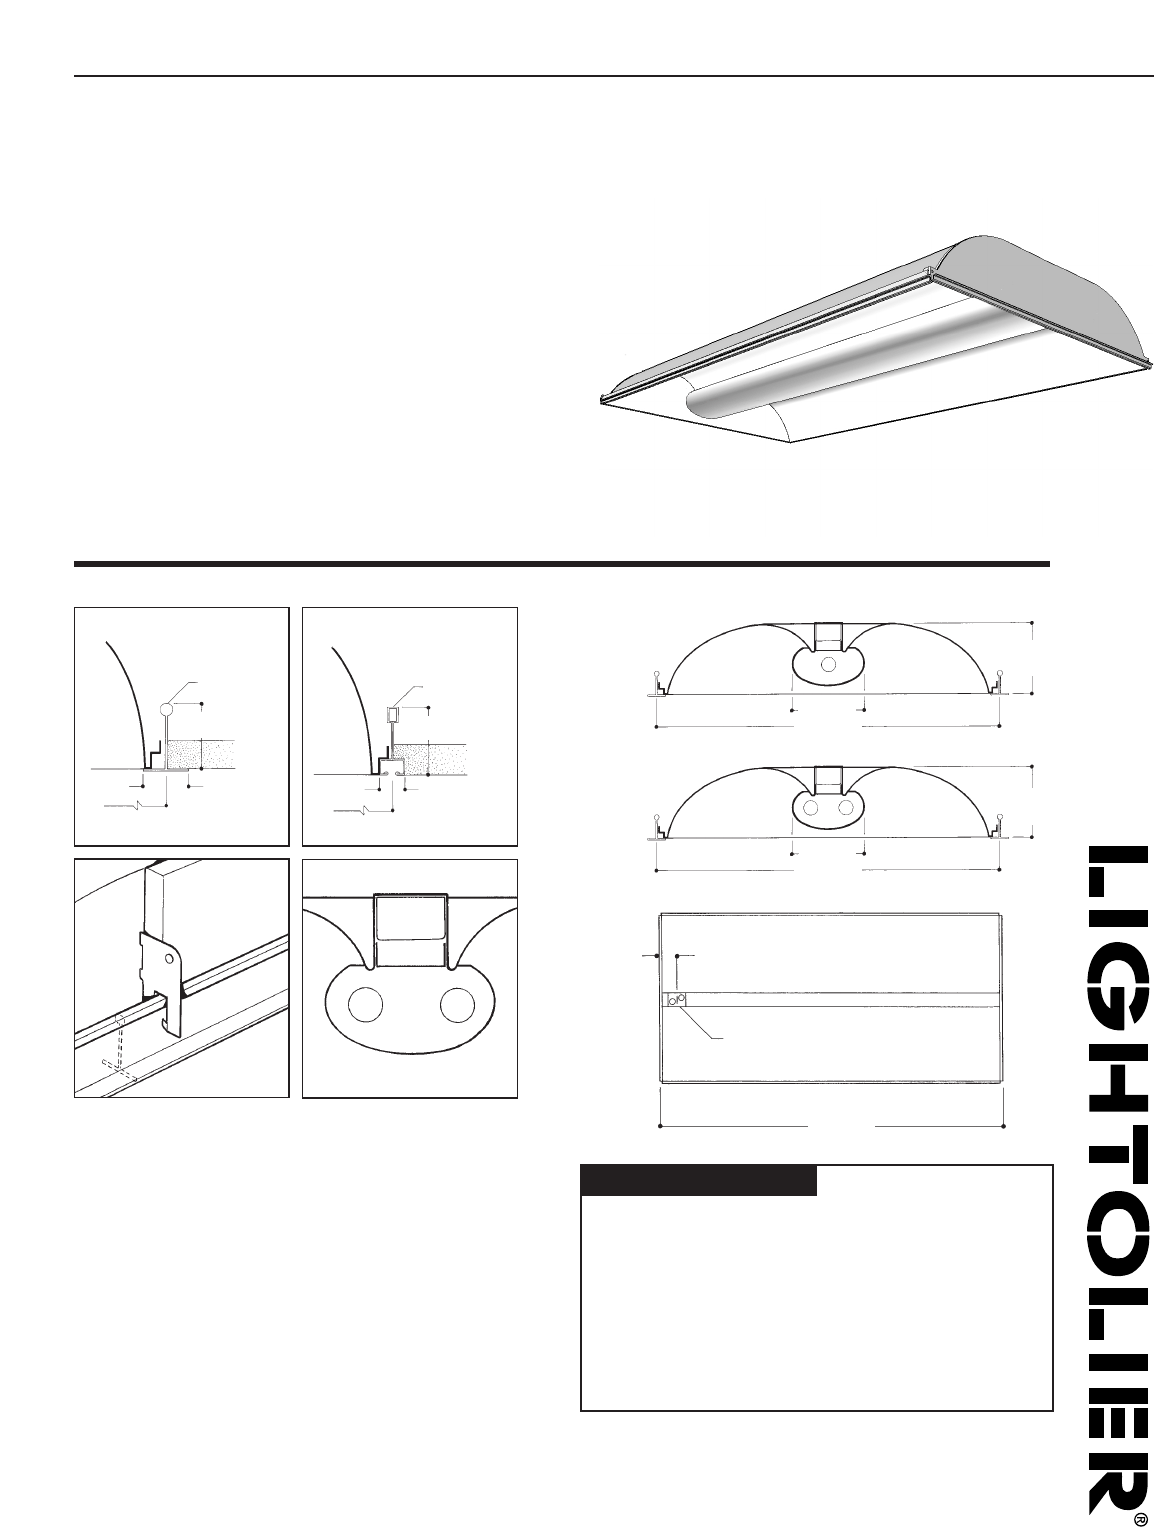 Wiring A Light Fixture Wires